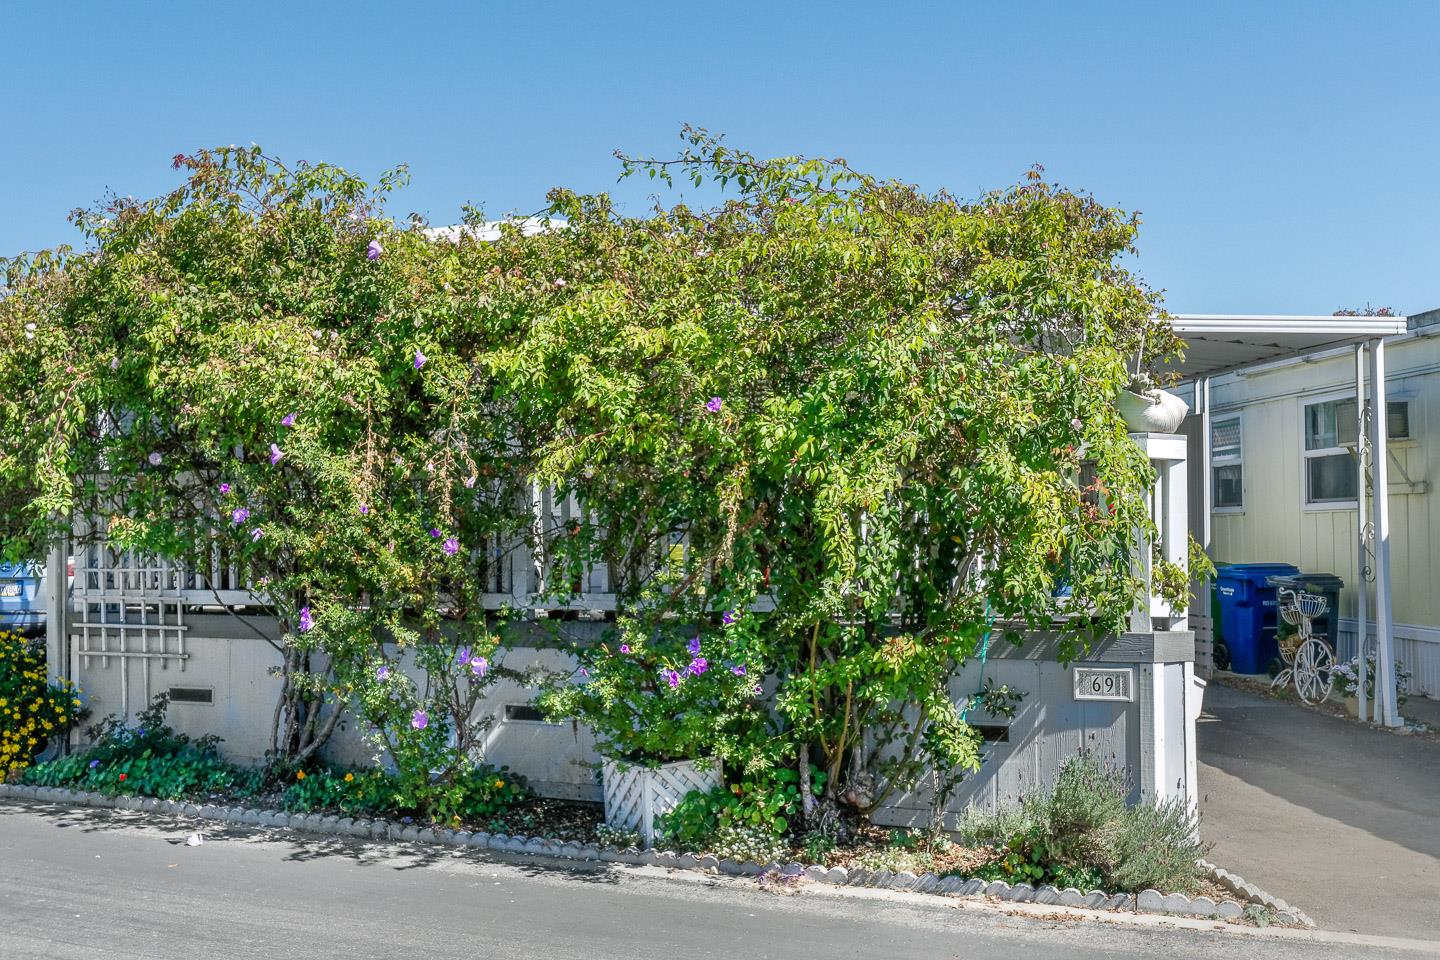 1555 Merrill ST 69 Santa Cruz Home Listings - Santa Cruz Properties Santa Cruz County Real Estate